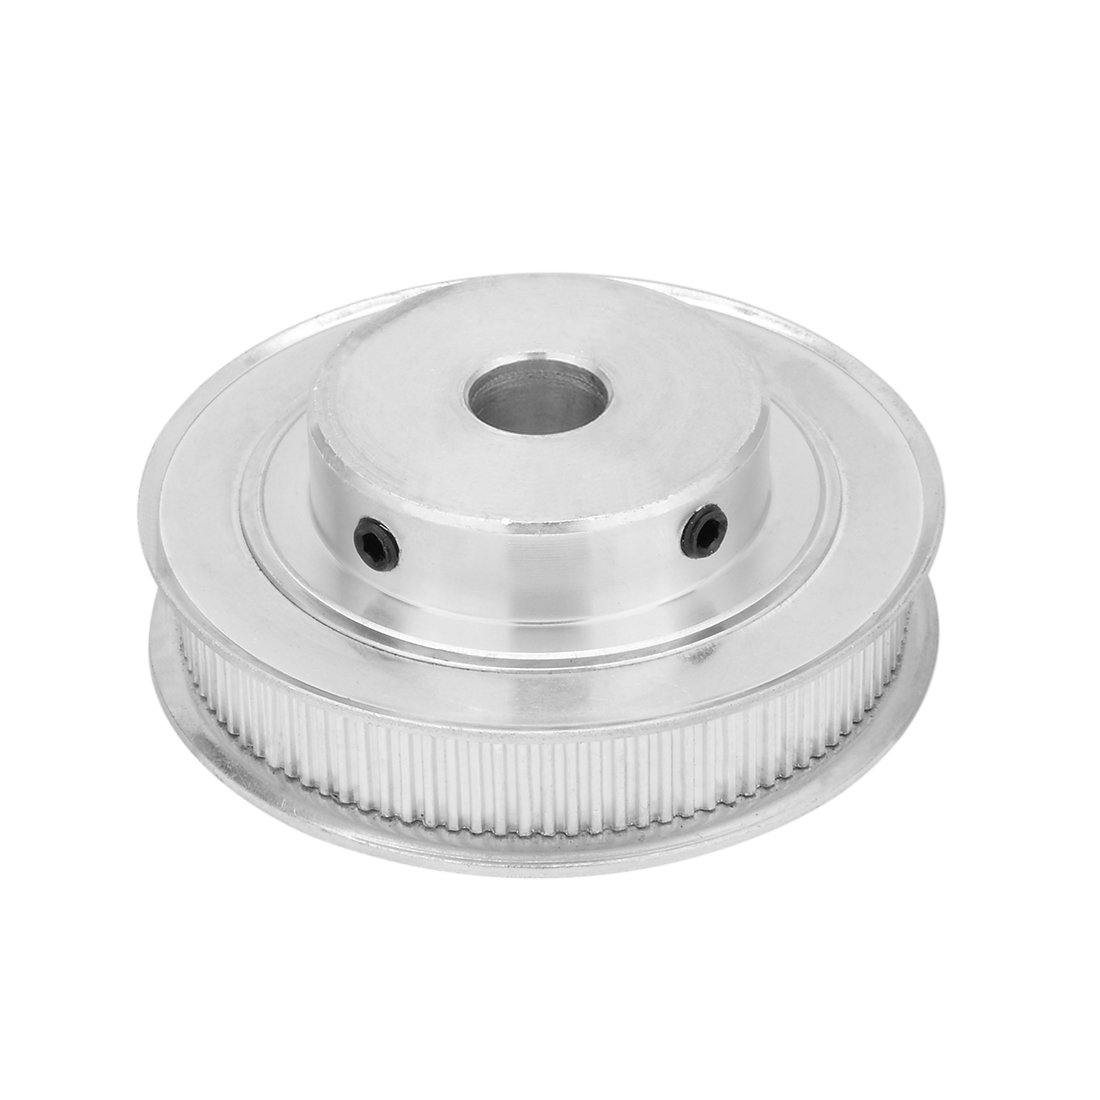 uxcell Aluminum 100 Teeth 12mm Bore Pu Max 89% OFF NEW before selling ☆ 2.032mm Belt Timing Pitch